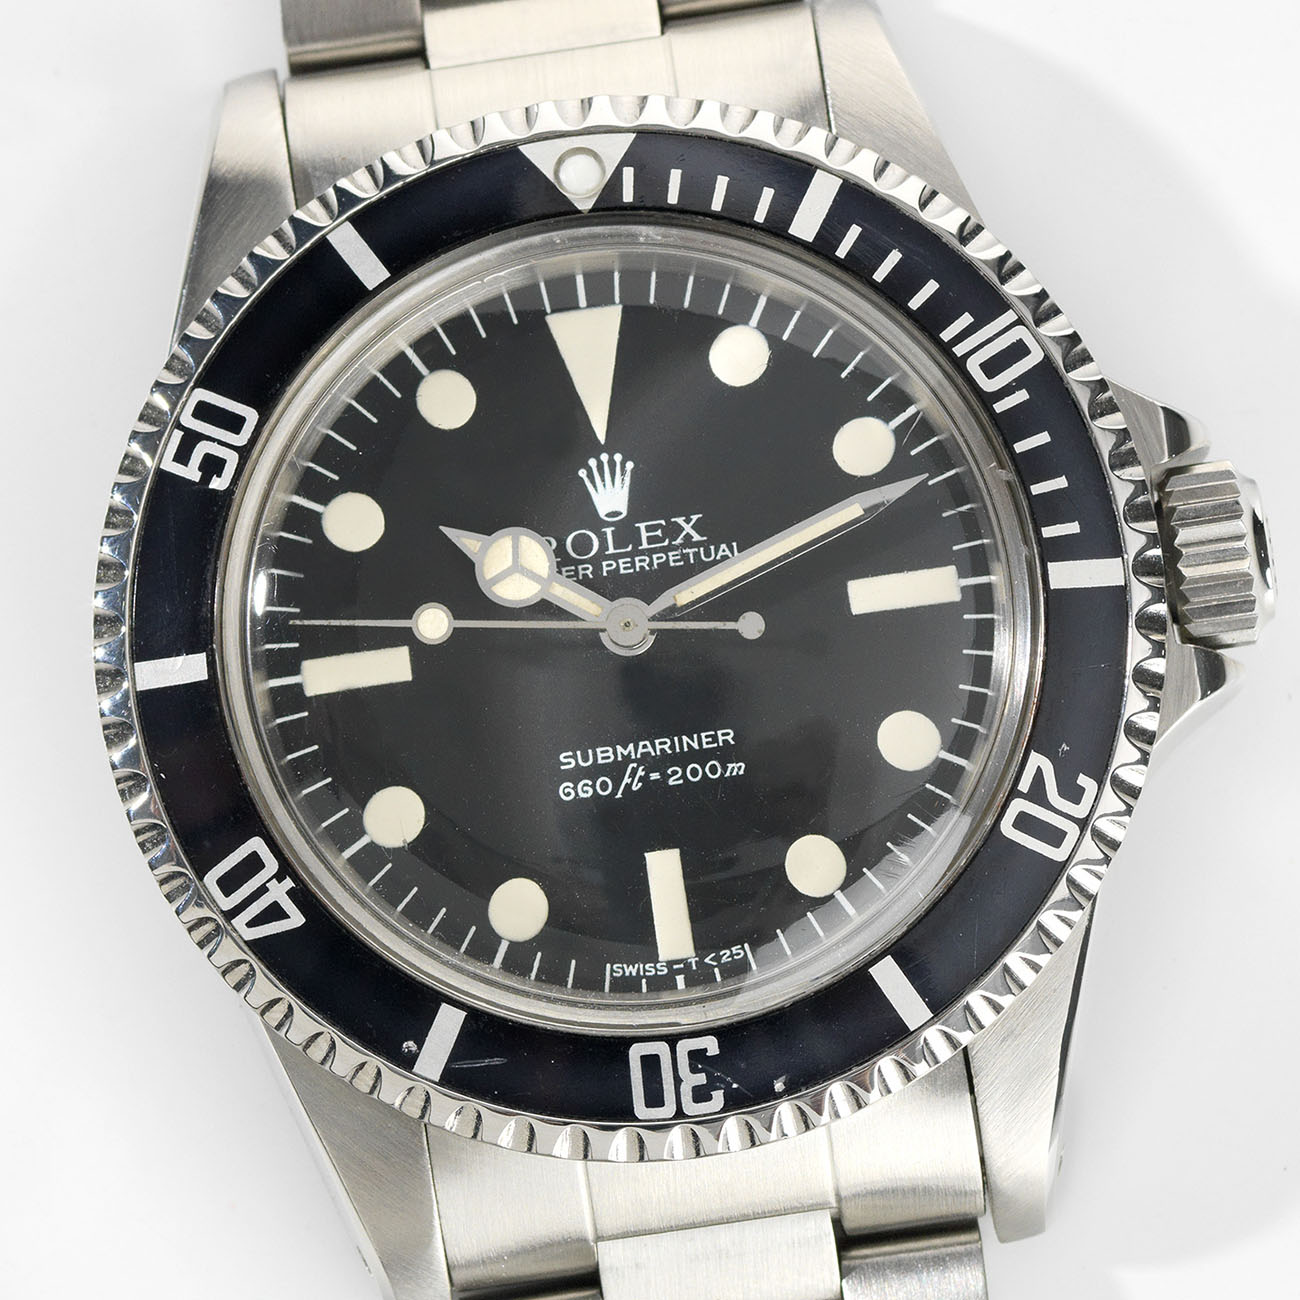 Vintage Rolex 5513 Submariner Love - Article at Bulang and Sons - Maxi Dial and Leather Watch Strap